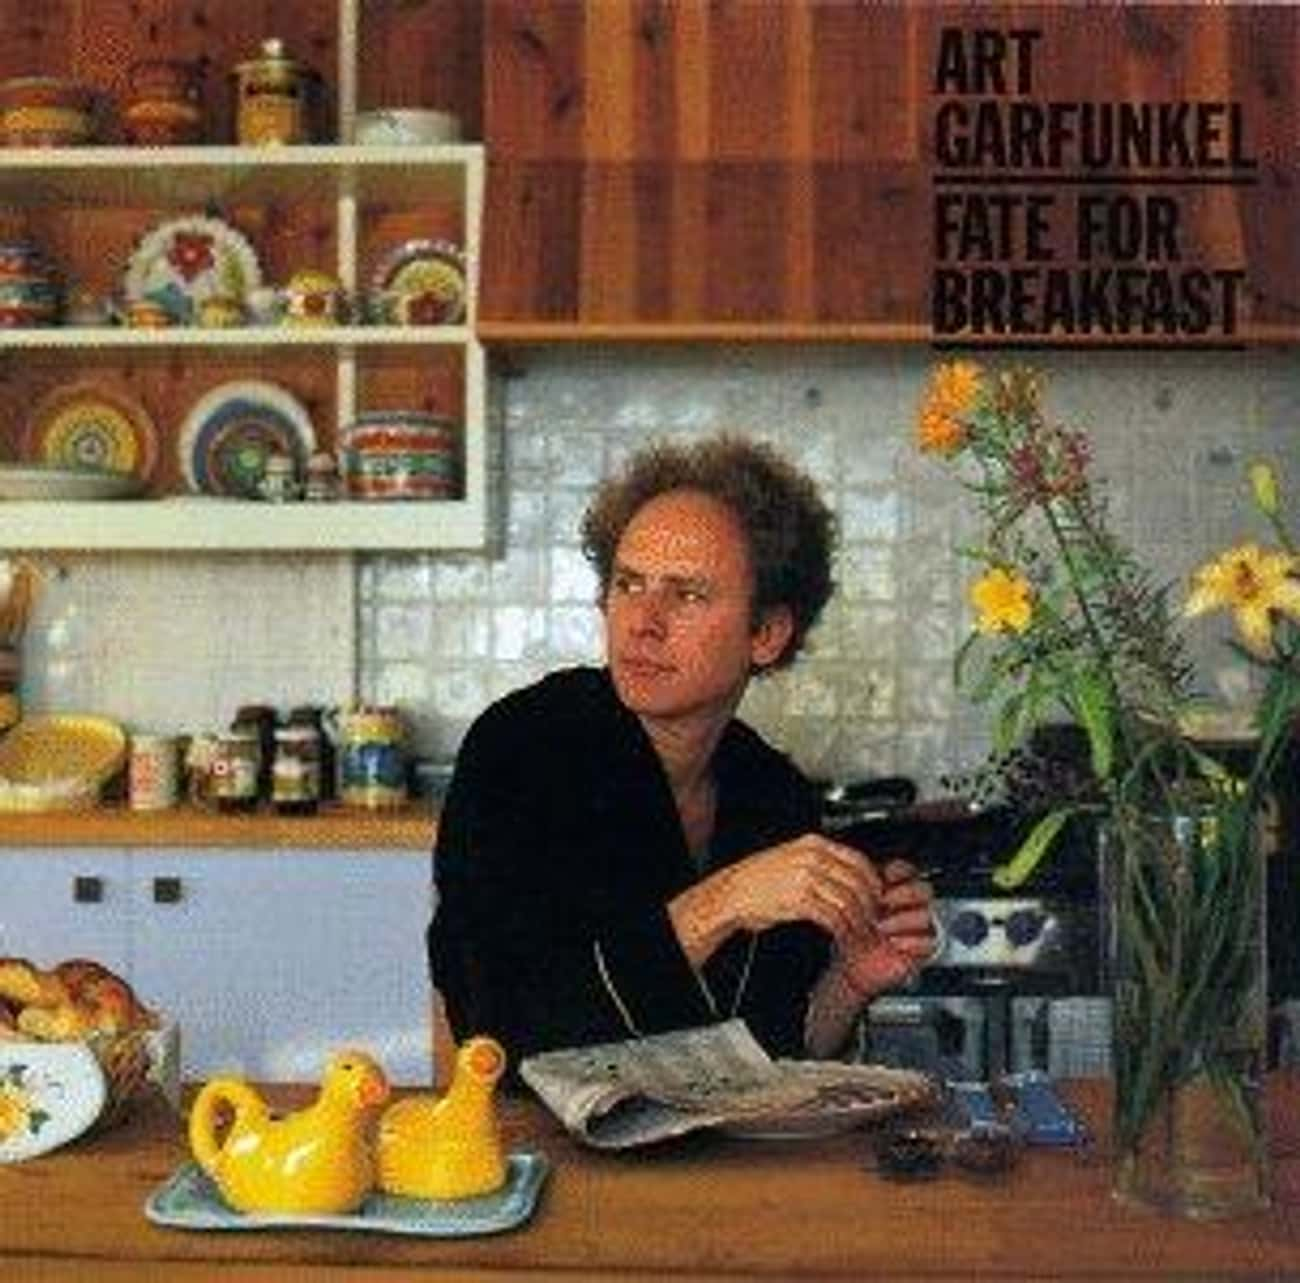 Fate for Breakfast is listed (or ranked) 3 on the list The Best Art Garfunkel Albums of All Time